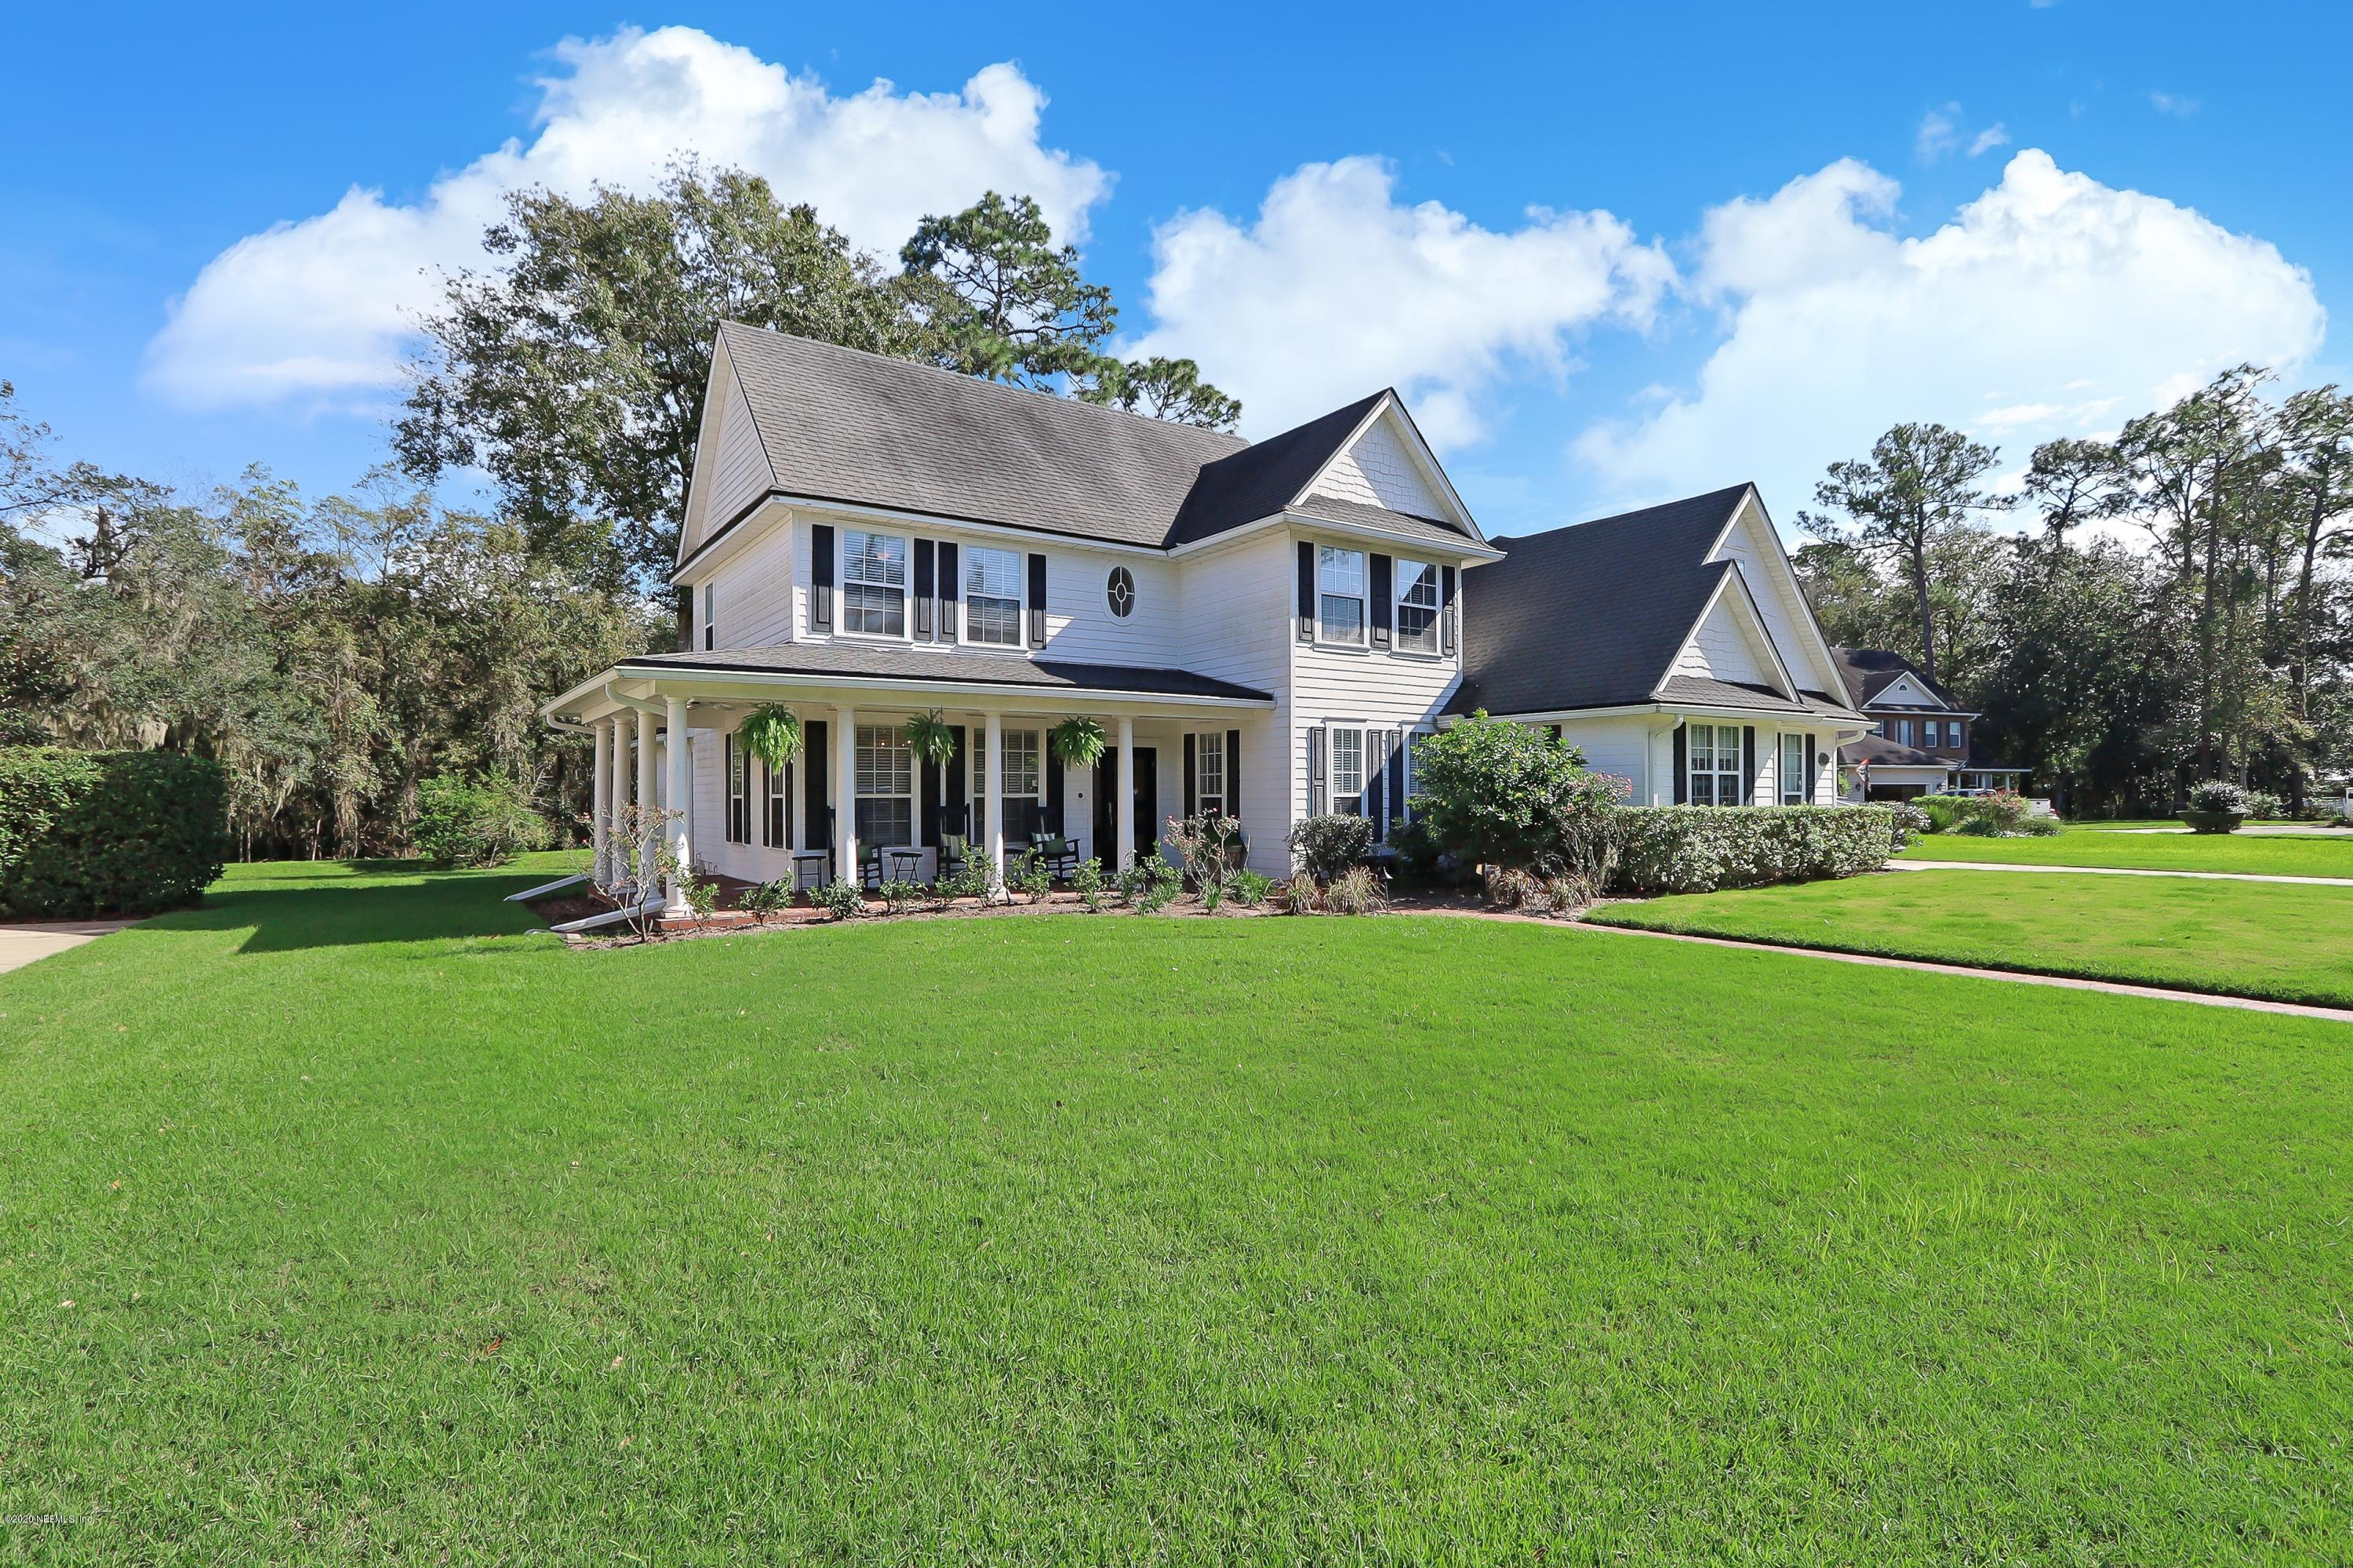 12219 AMBROSIA, JACKSONVILLE, FLORIDA 32223, 4 Bedrooms Bedrooms, ,3 BathroomsBathrooms,Residential,For sale,AMBROSIA,1083424